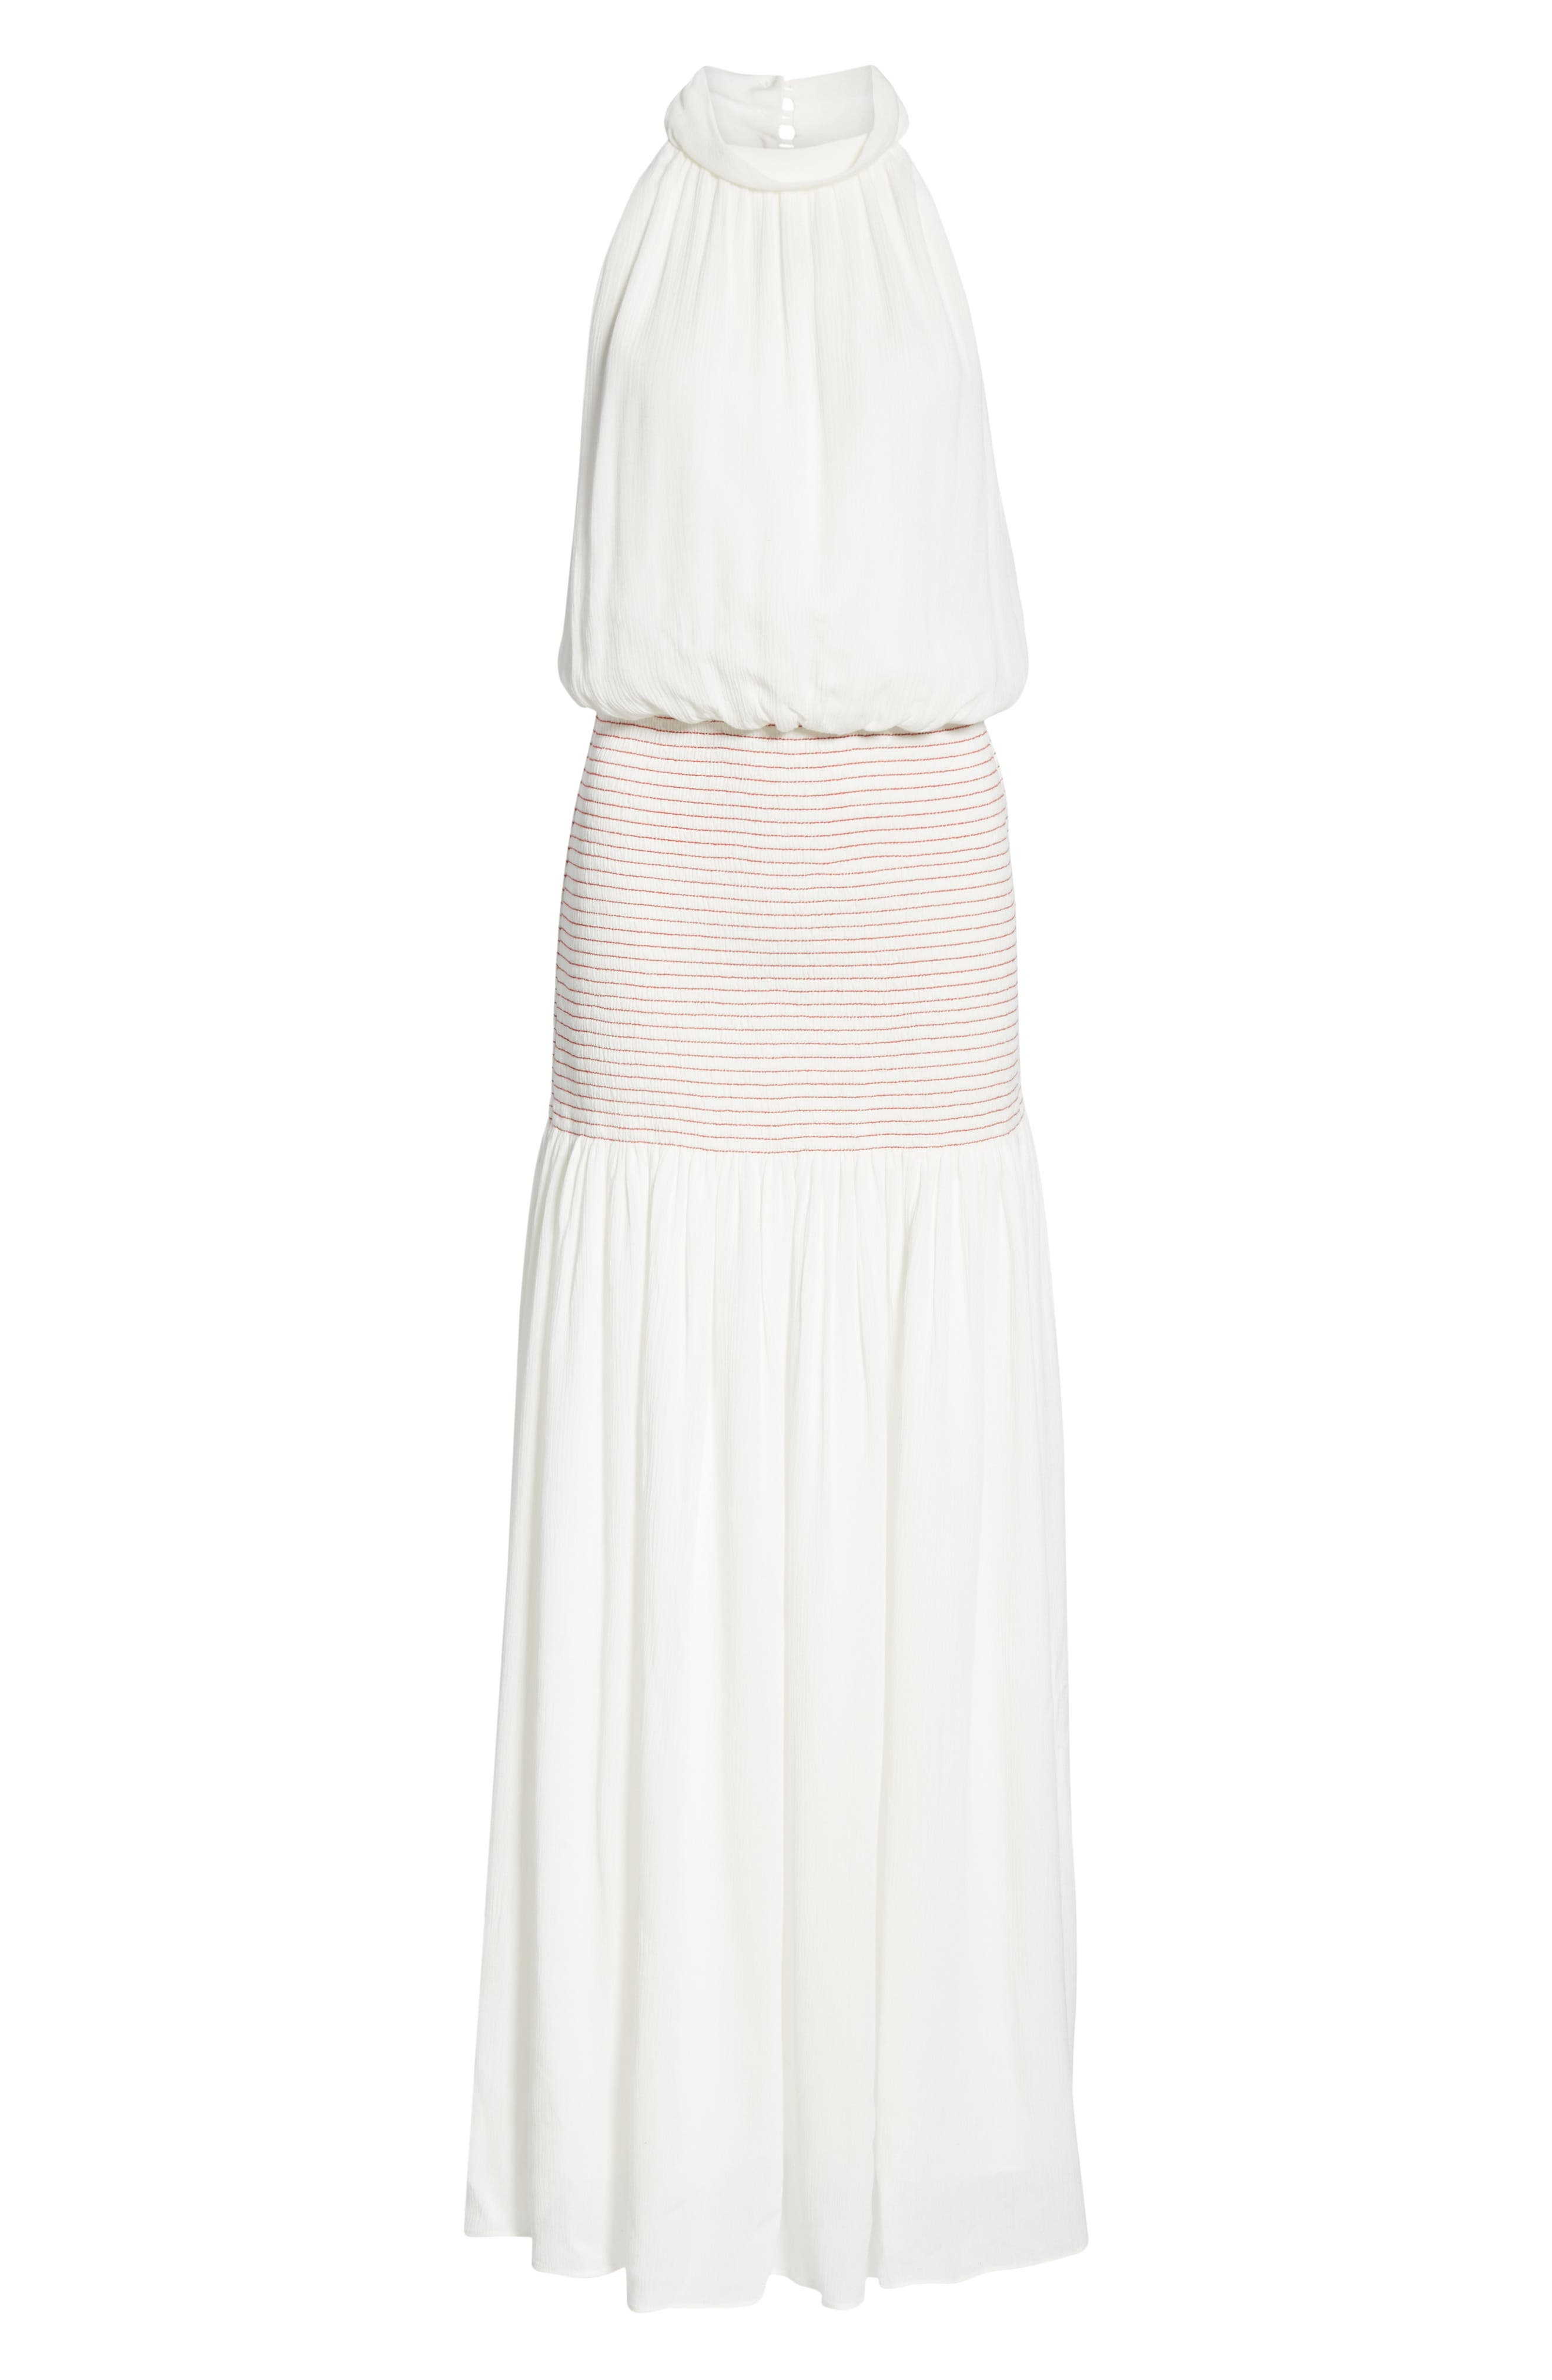 Festa Smocked Panel Maxi Dress,                             Alternate thumbnail 6, color,                             WHITE